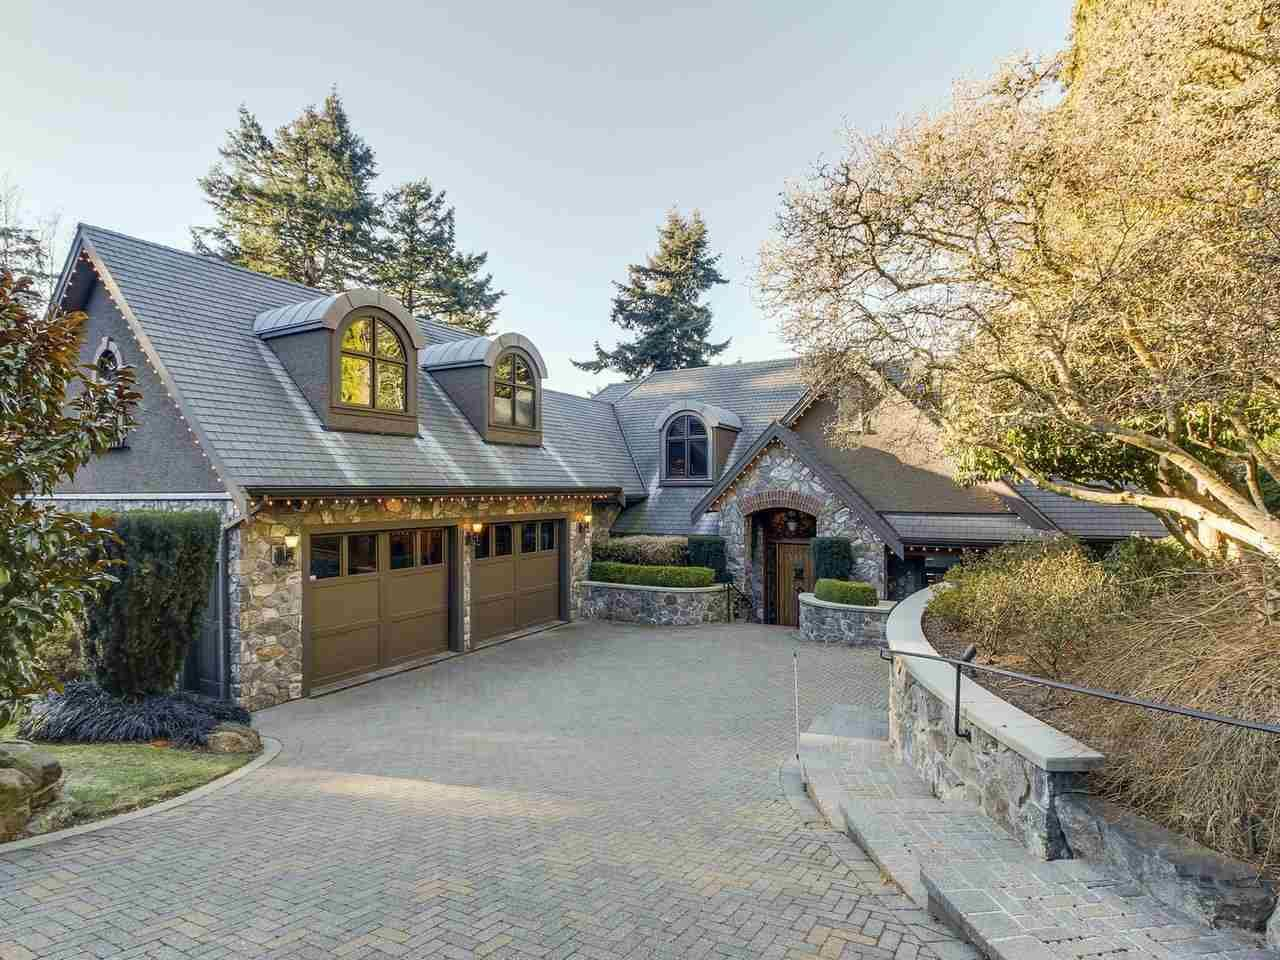 Main Photo: 12626 15 Avenue in Surrey: Crescent Bch Ocean Pk. House for sale (South Surrey White Rock)  : MLS®# R2533225